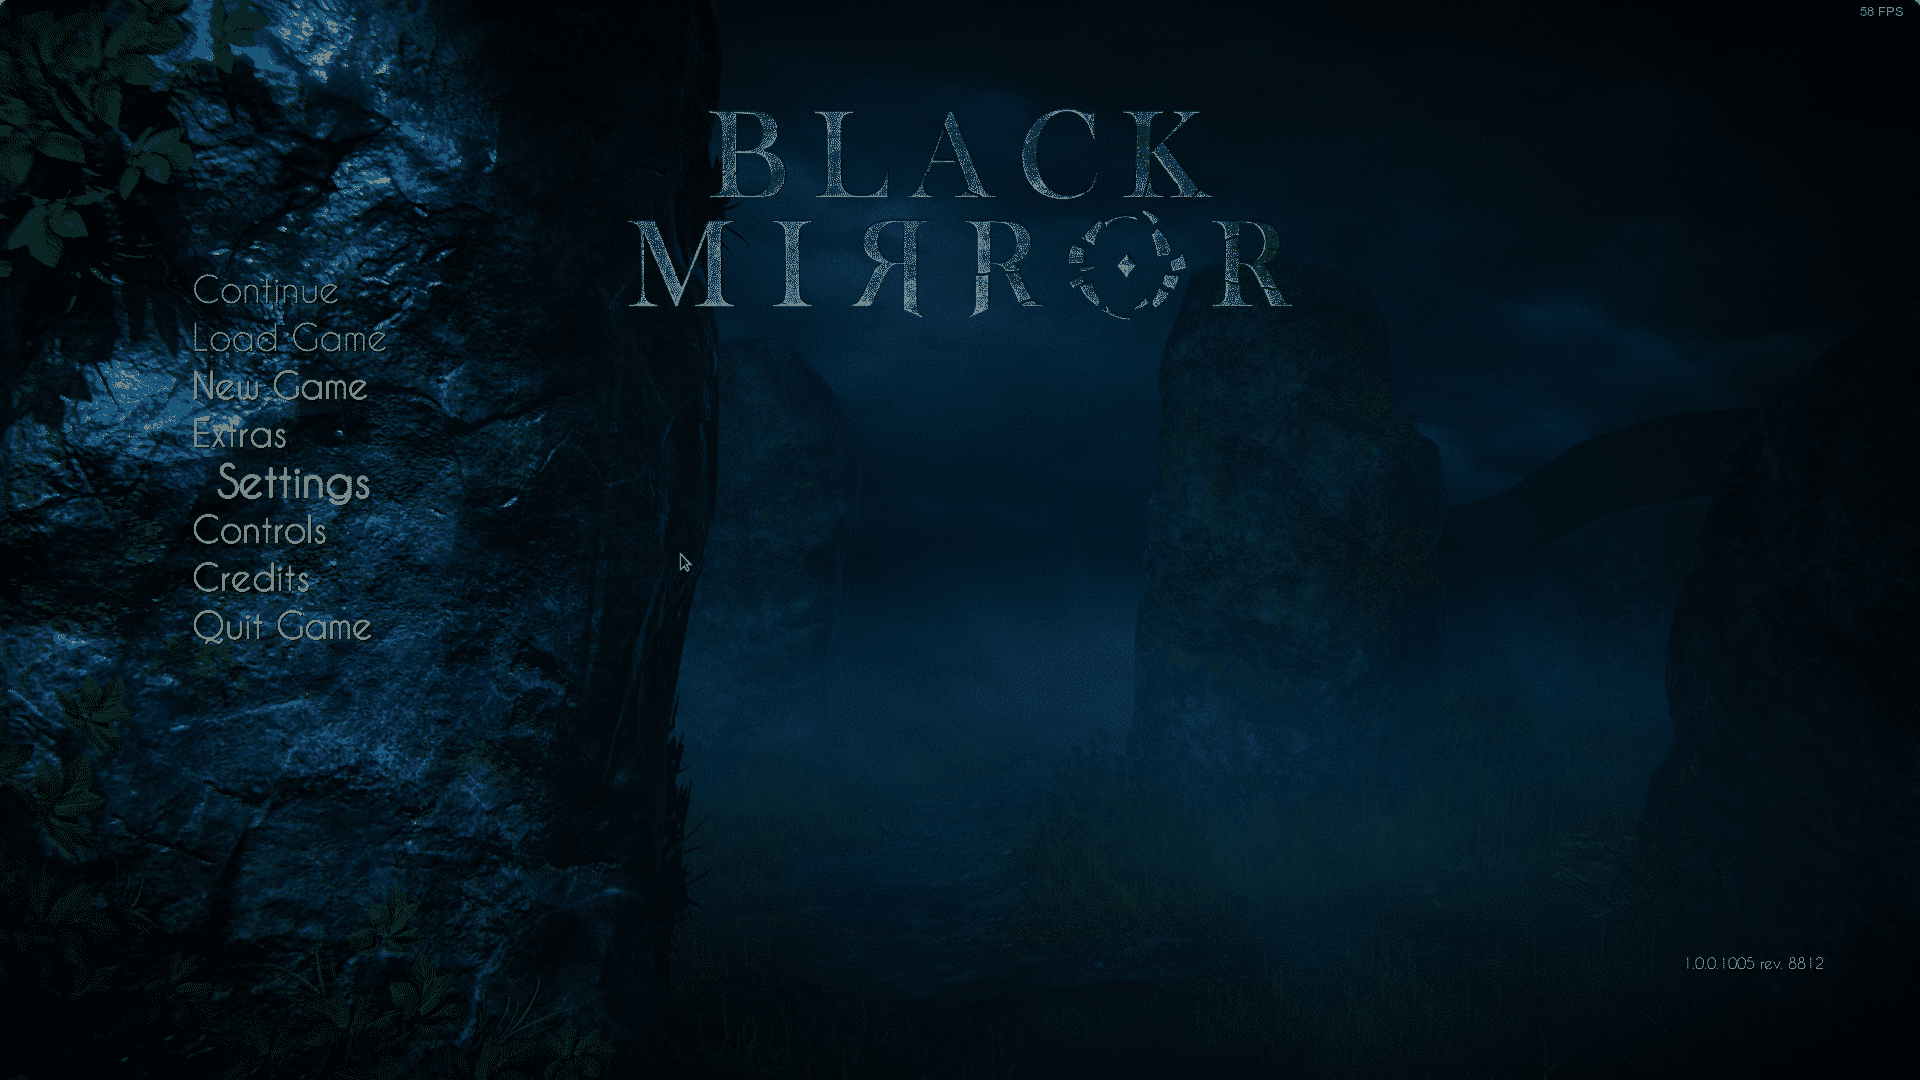 black mirror confirmed for linux mac and windows games 2017 screenshot